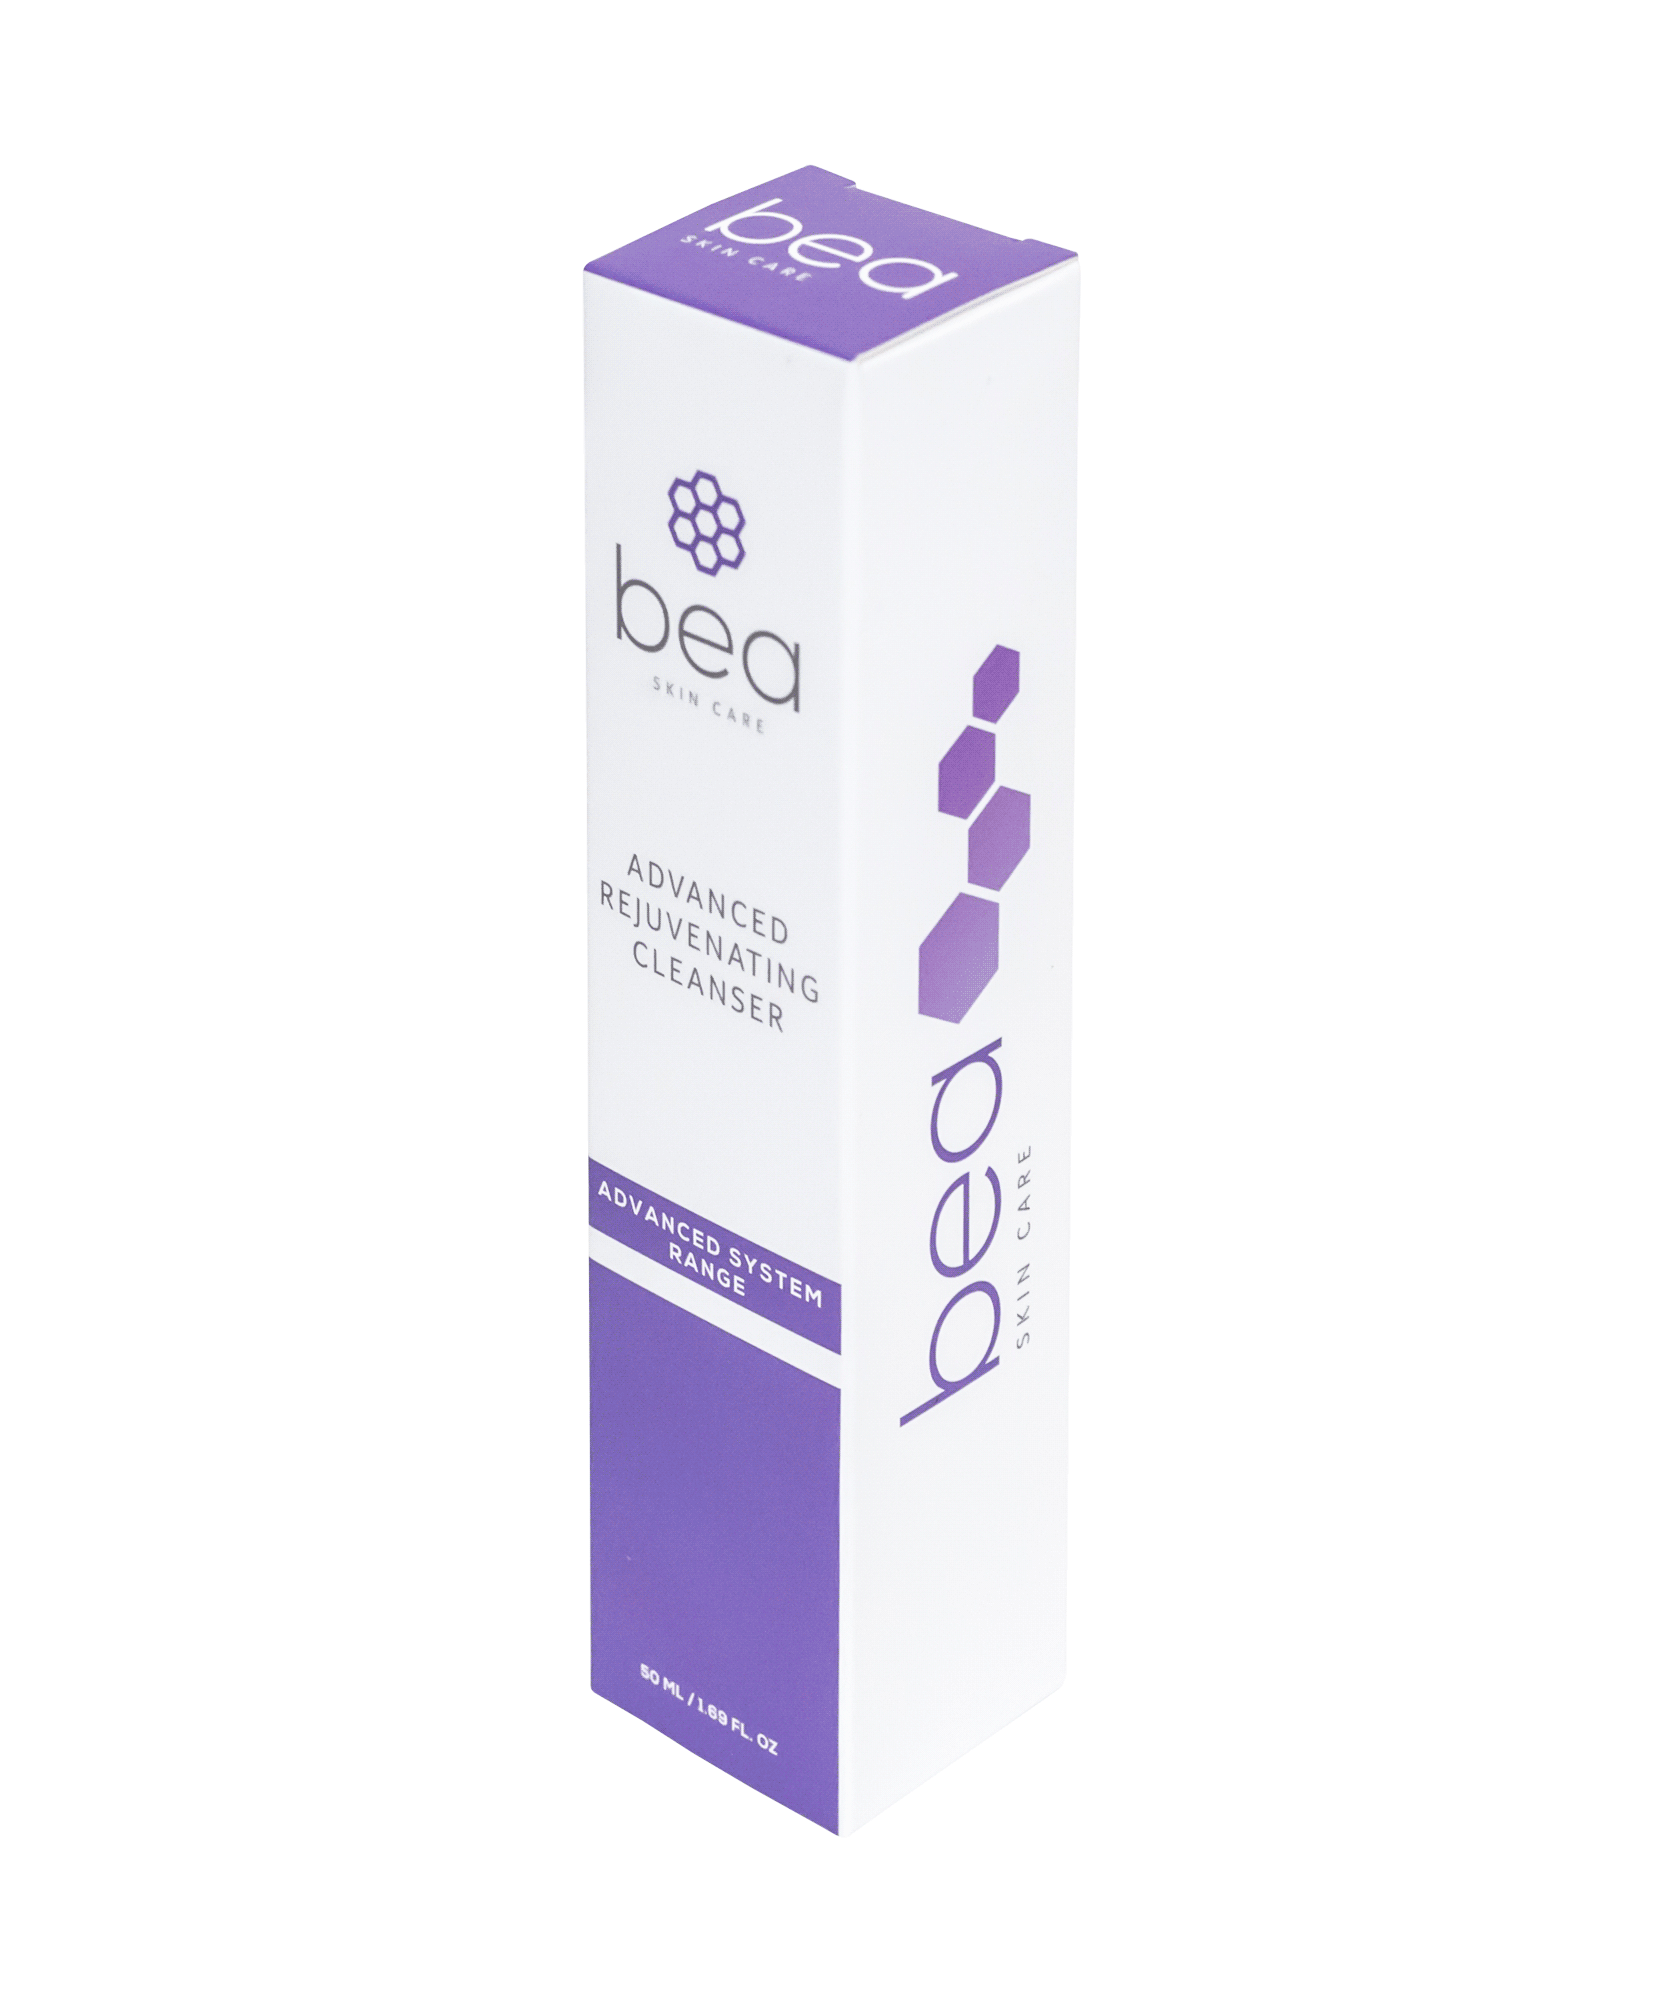 Advanced Rejuvenating Cleanser - 50 ml Cleanser bea Skin Care